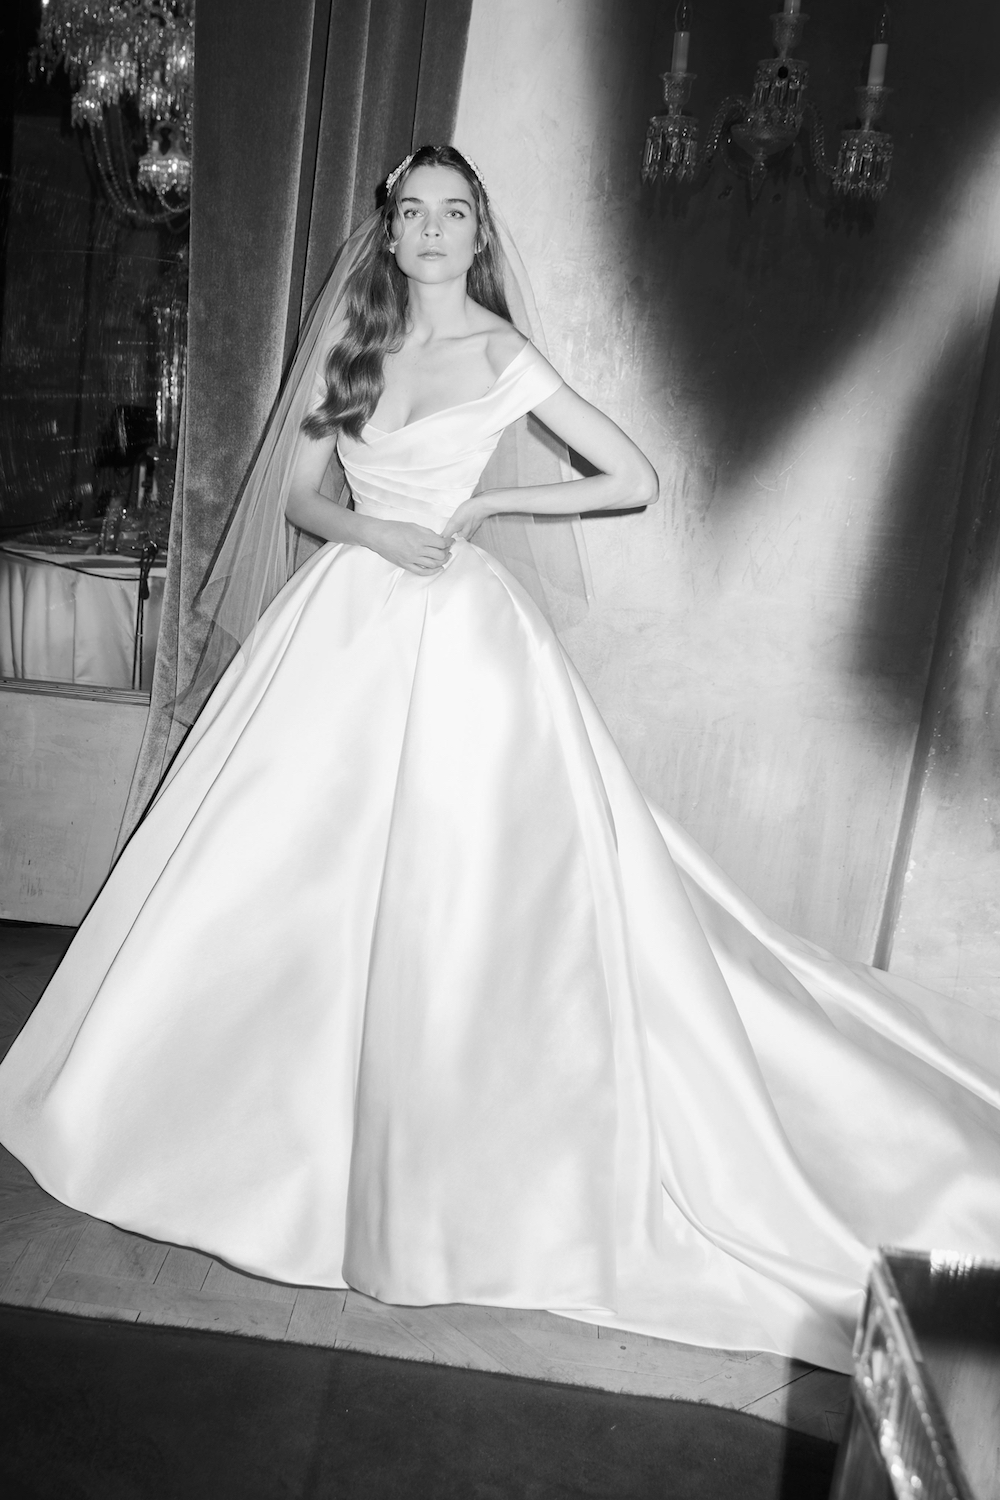 studio-ohlala-wedding-beauty-business-tips-blog-paris-wedding-dress-elie-saab.jpg